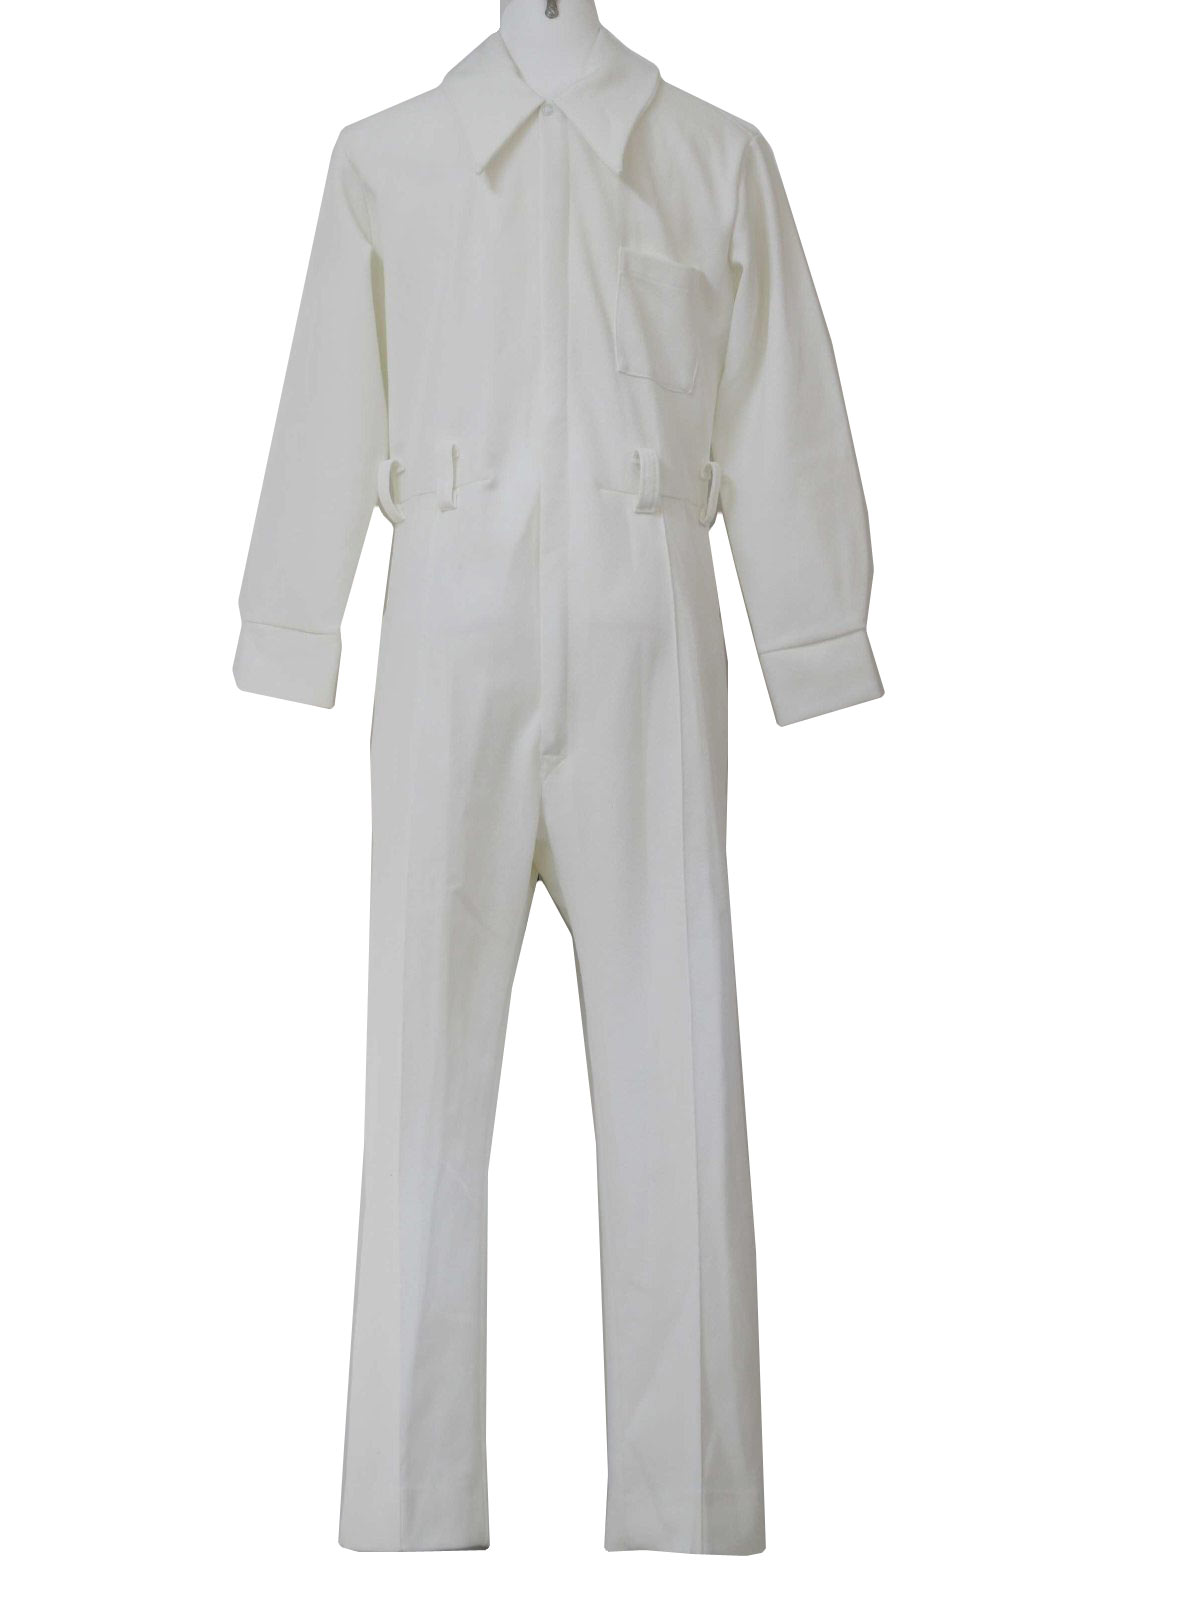 a77e6dbe38a Retro 70 s Suit  70s -LeVoys- Mens solid white double knit polyester ...